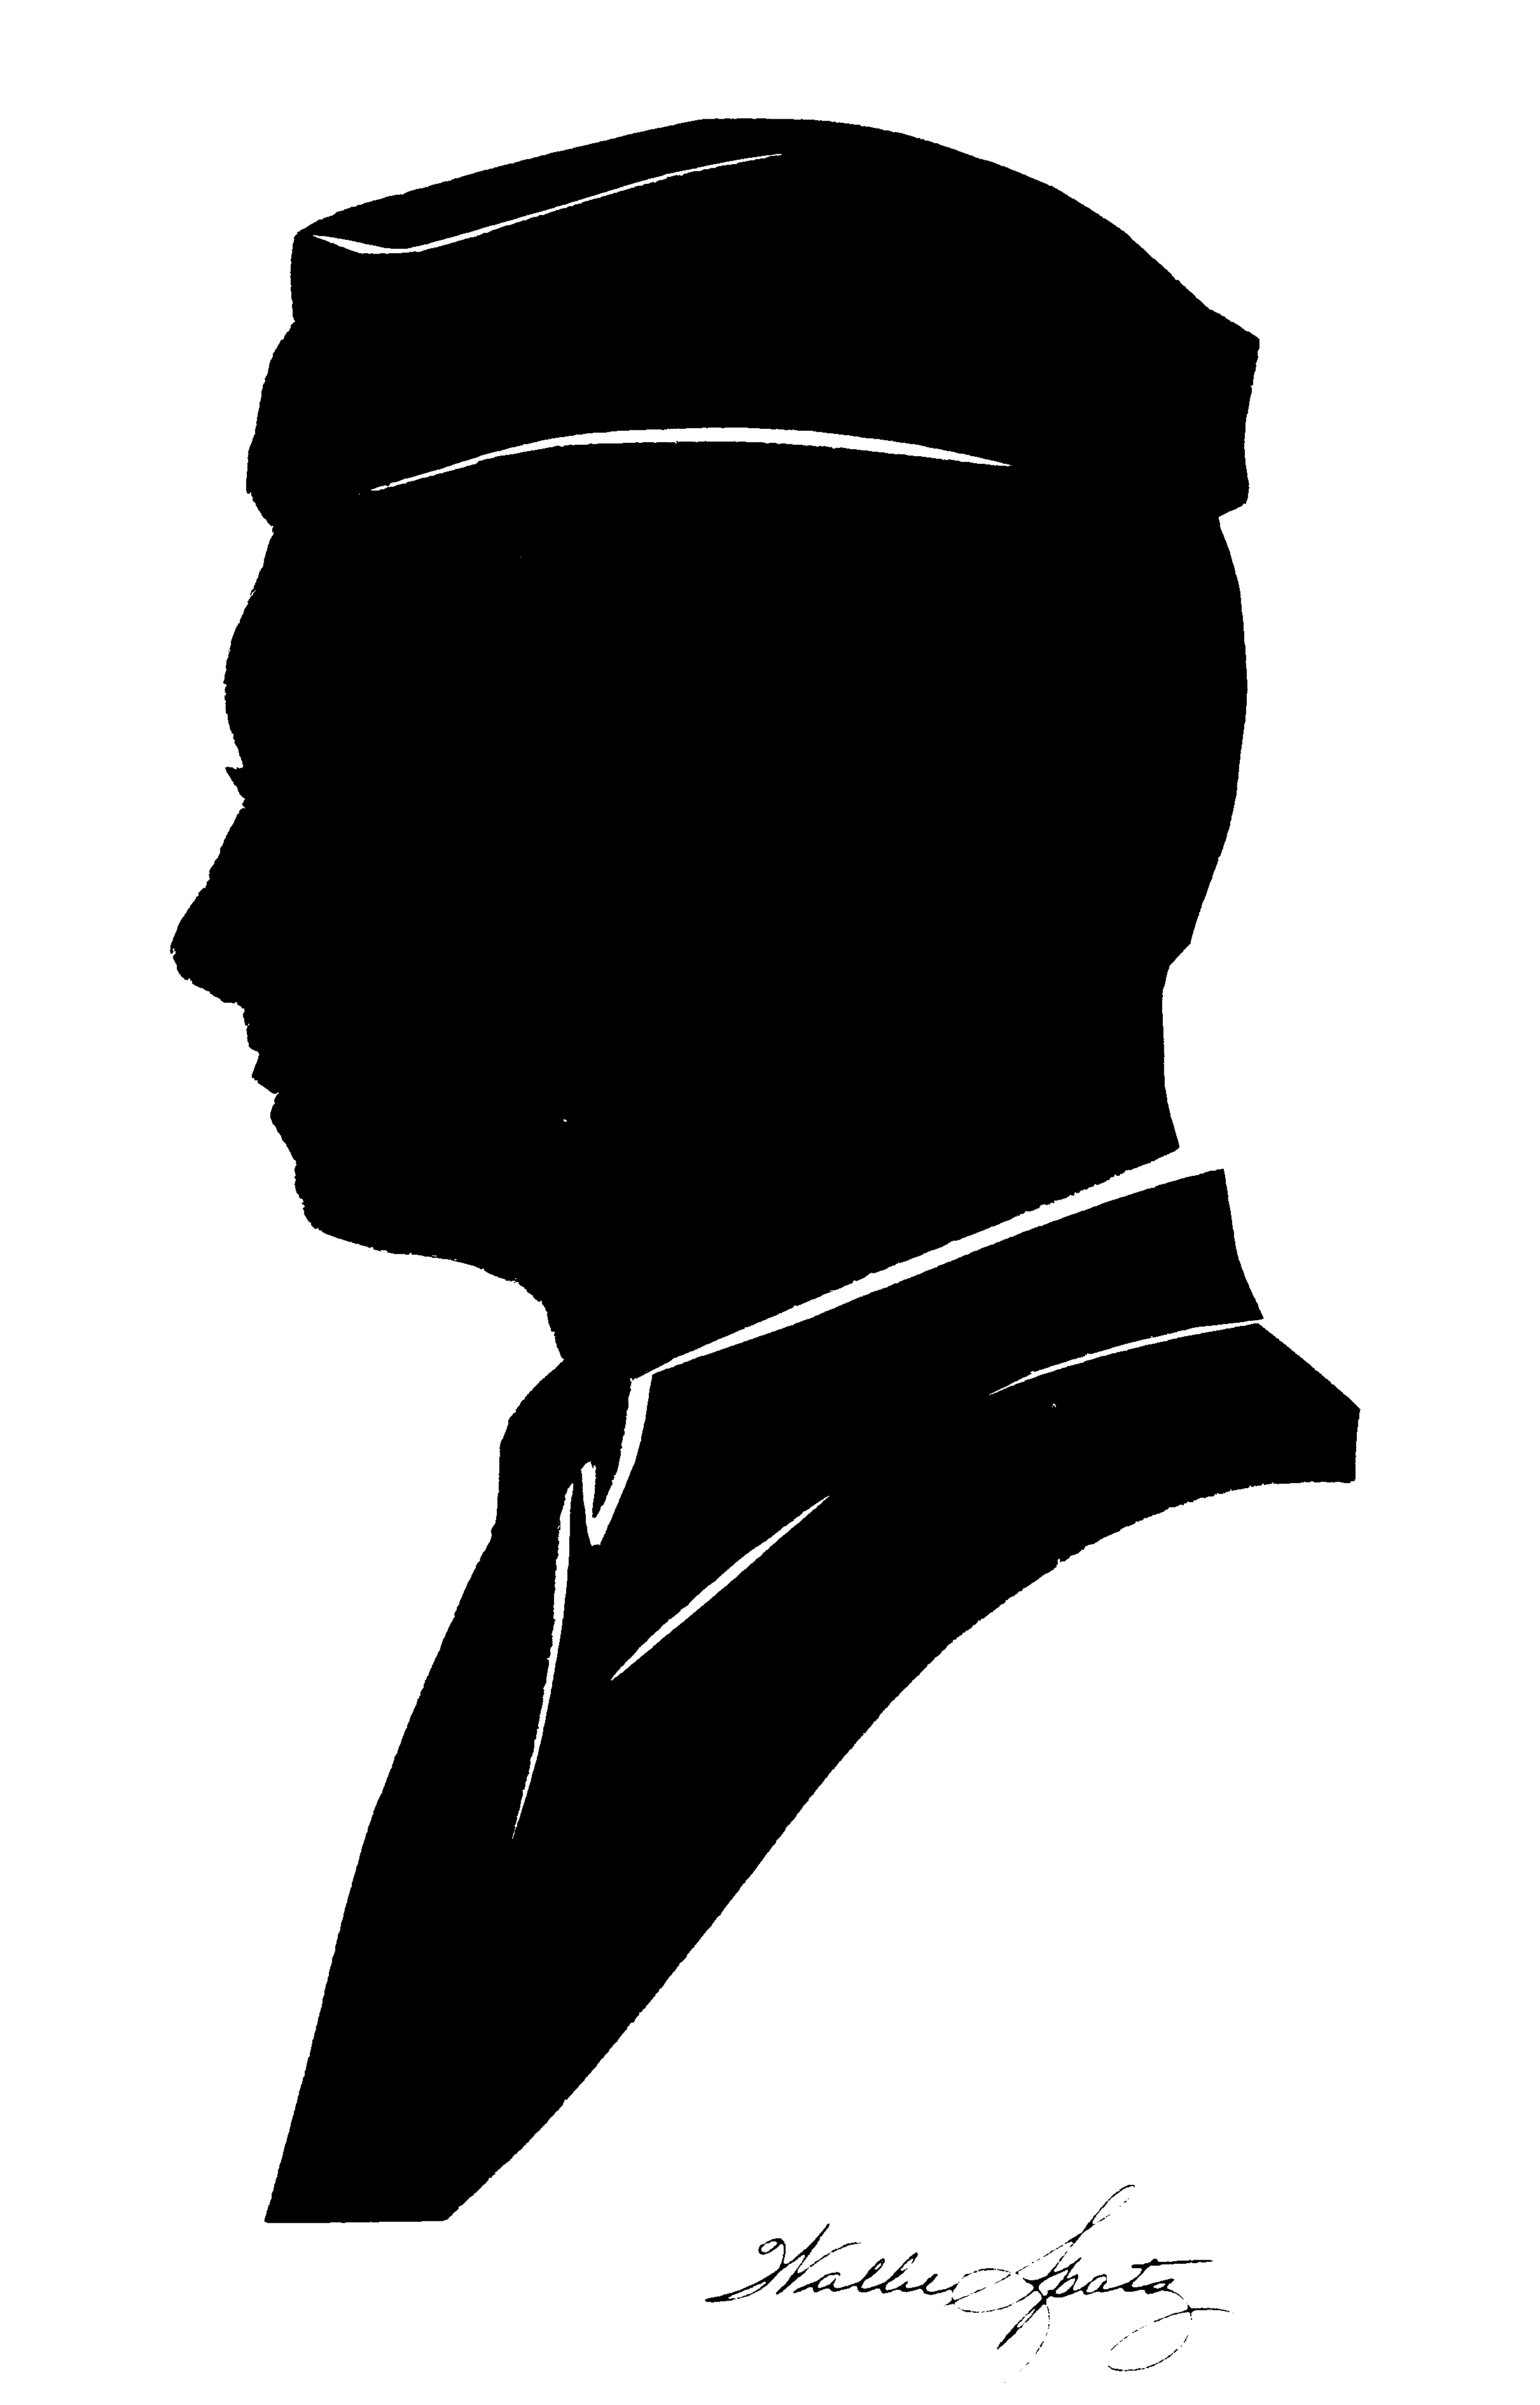 Wwii Soldier Silhouette Clipart - Clipart Kid